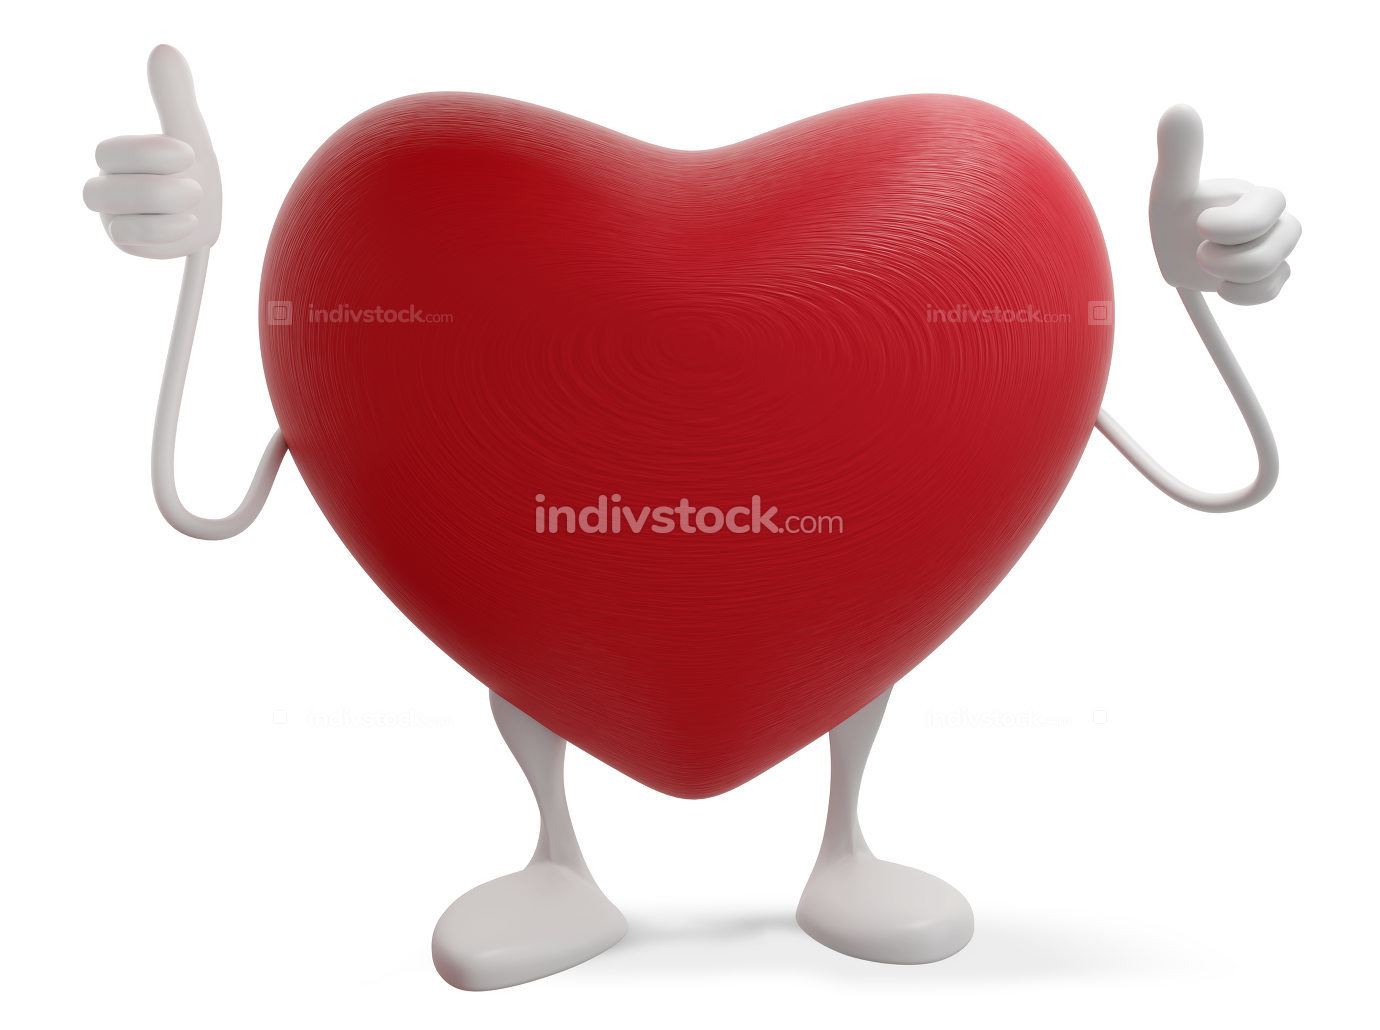 heart symbol thumbs up 3d-illustration